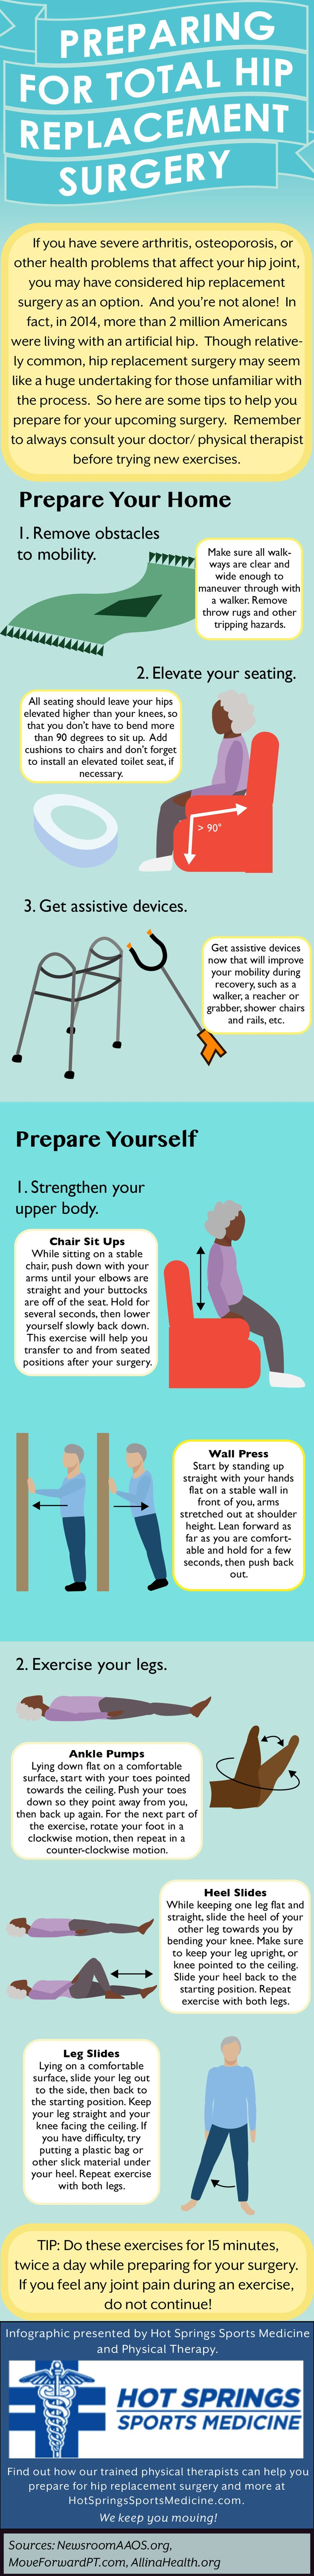 Follow these steps before your hip replacement surgery to make post-op recovery easier and faster! #hipreplacementsurgery #hipreplacement #preop #preparingforsurgery Check out our website at HotSpringsSportsMedicine.com to find out how our team of trained physical therapists can help you prepare for surgery and achieve a better quality of life. Let's get you better! #HotSpringsSportsMedicine